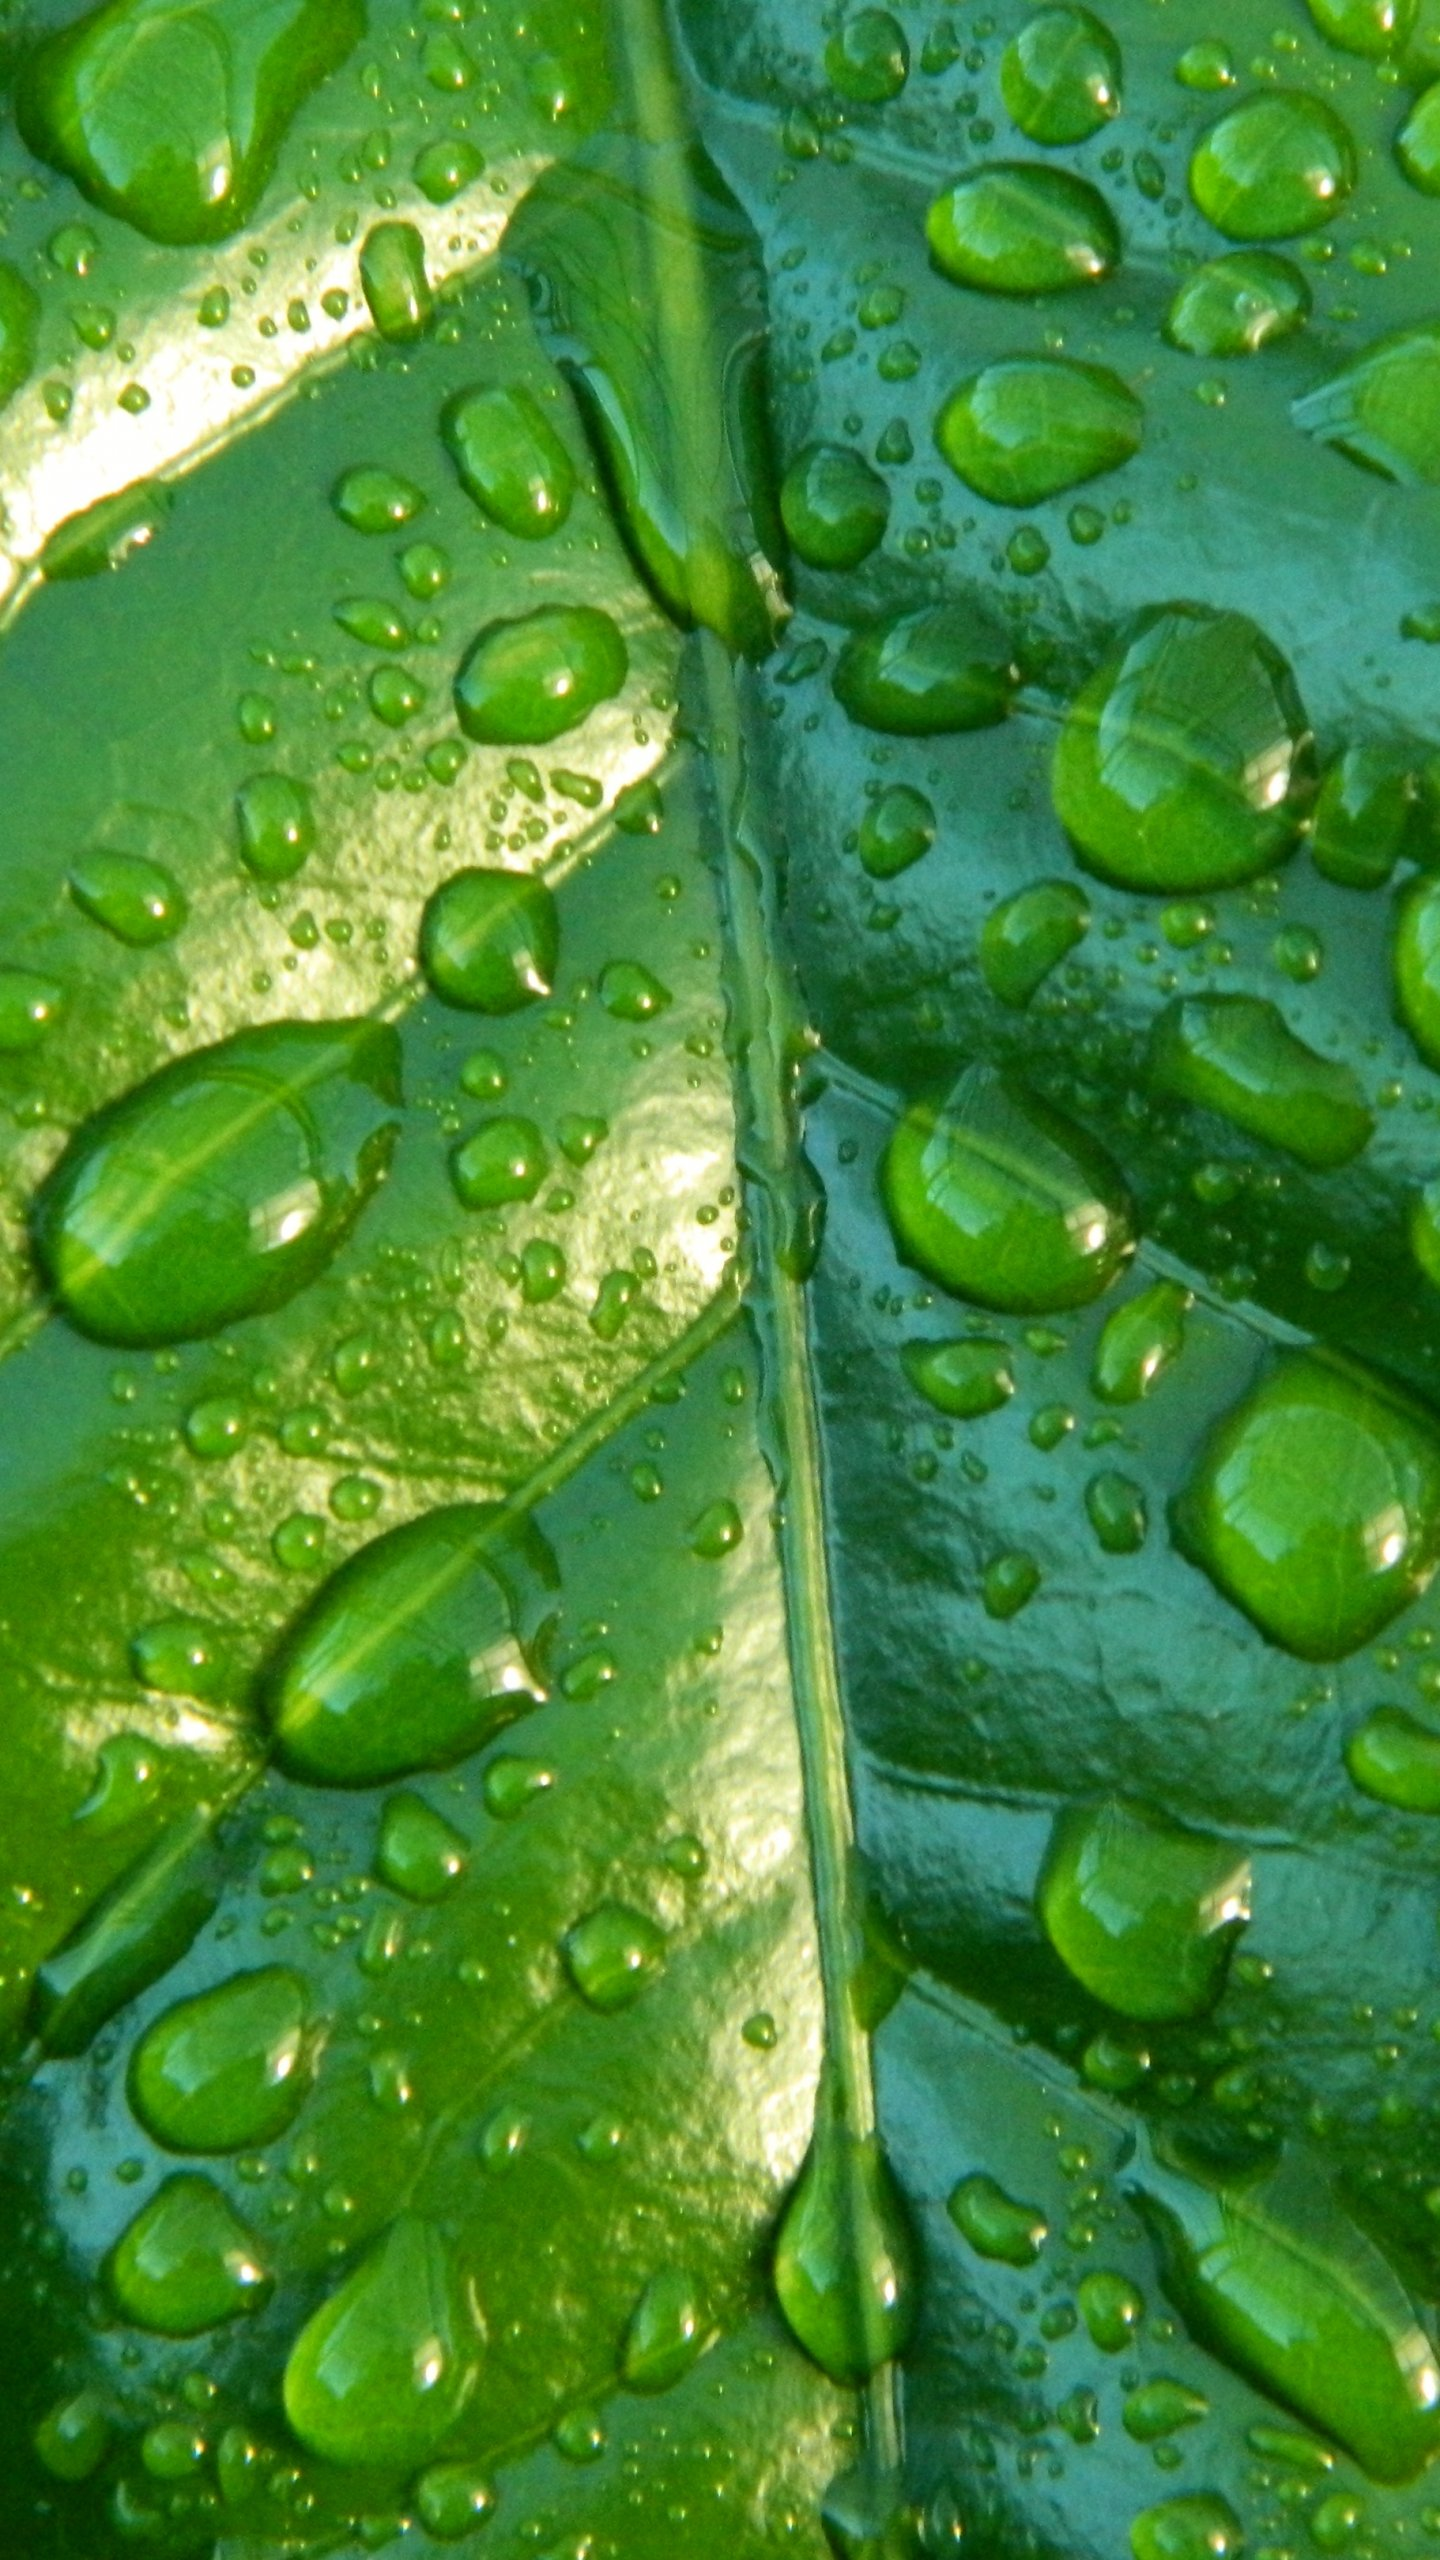 Raindrops On Leaf Wallpaper Iphone Android Desktop